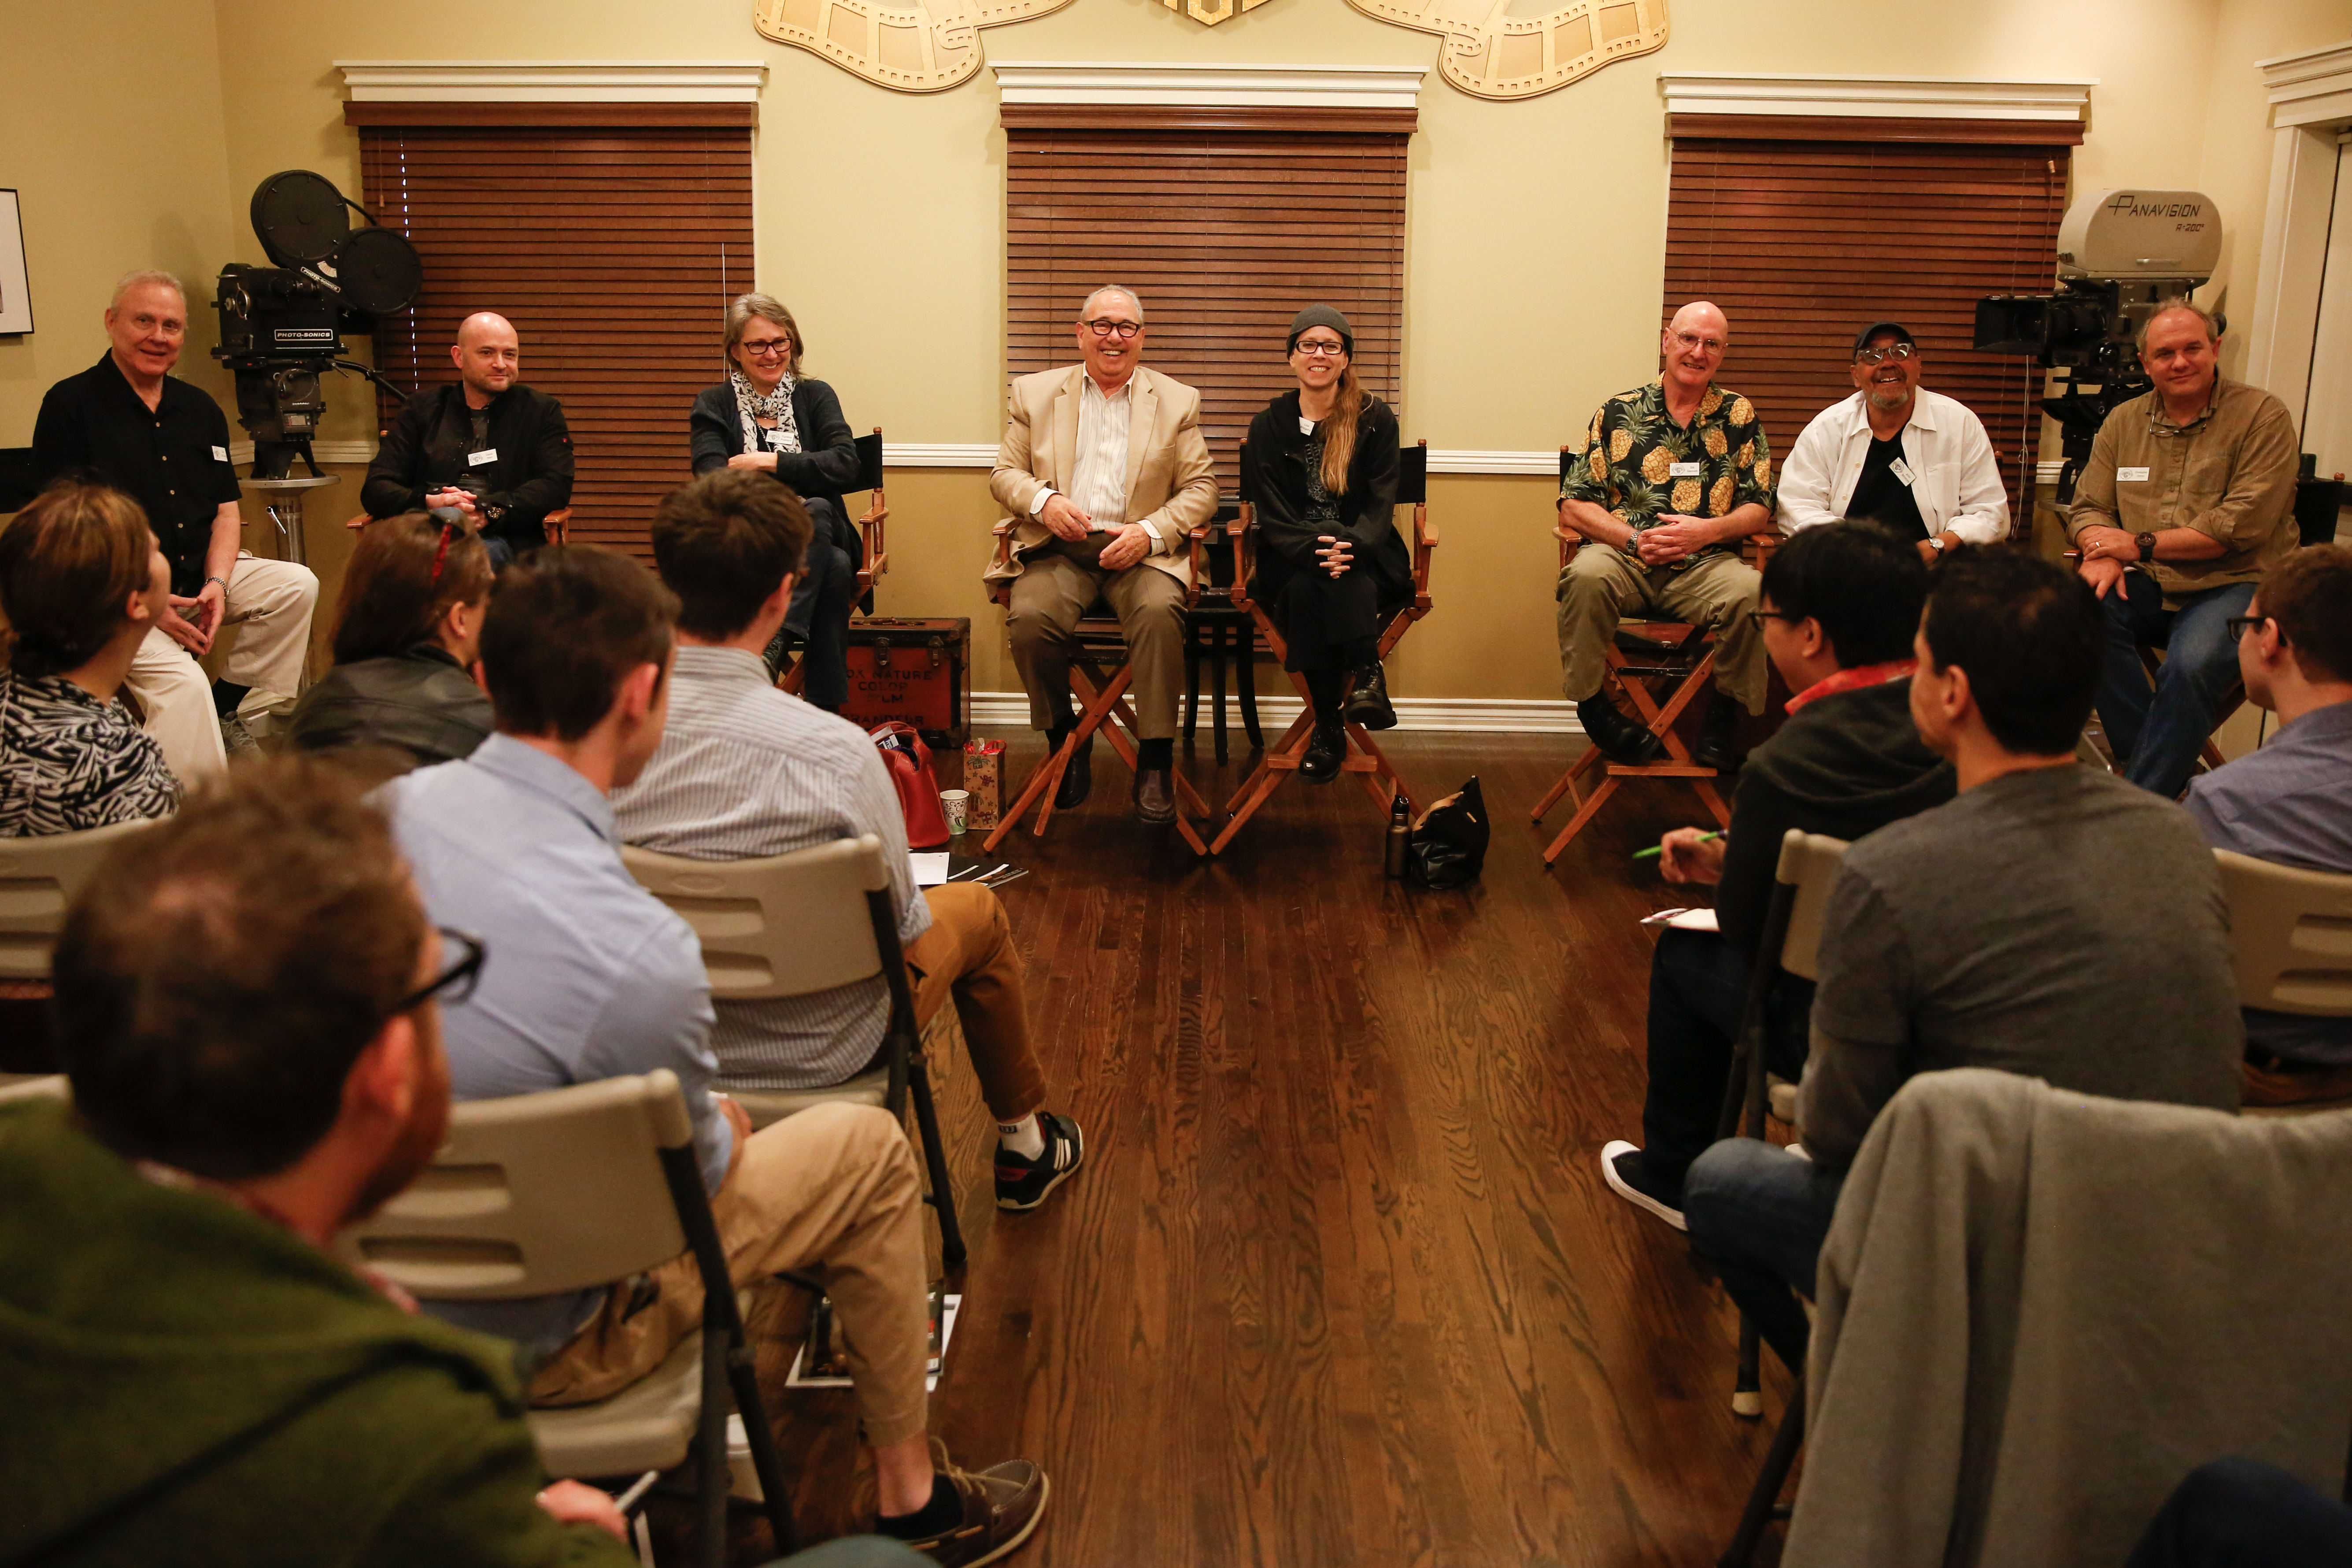 From left: ASC cinematographers Don McCuaig, David Klein, Cynthia Pusheck, George Spiro Dibie, Lisa Wiegand, Bill Bennett, John Simmons and Chris Chomyn field questions from students from the Rochester Institute of Technology. (Alex Beatty/ASC)